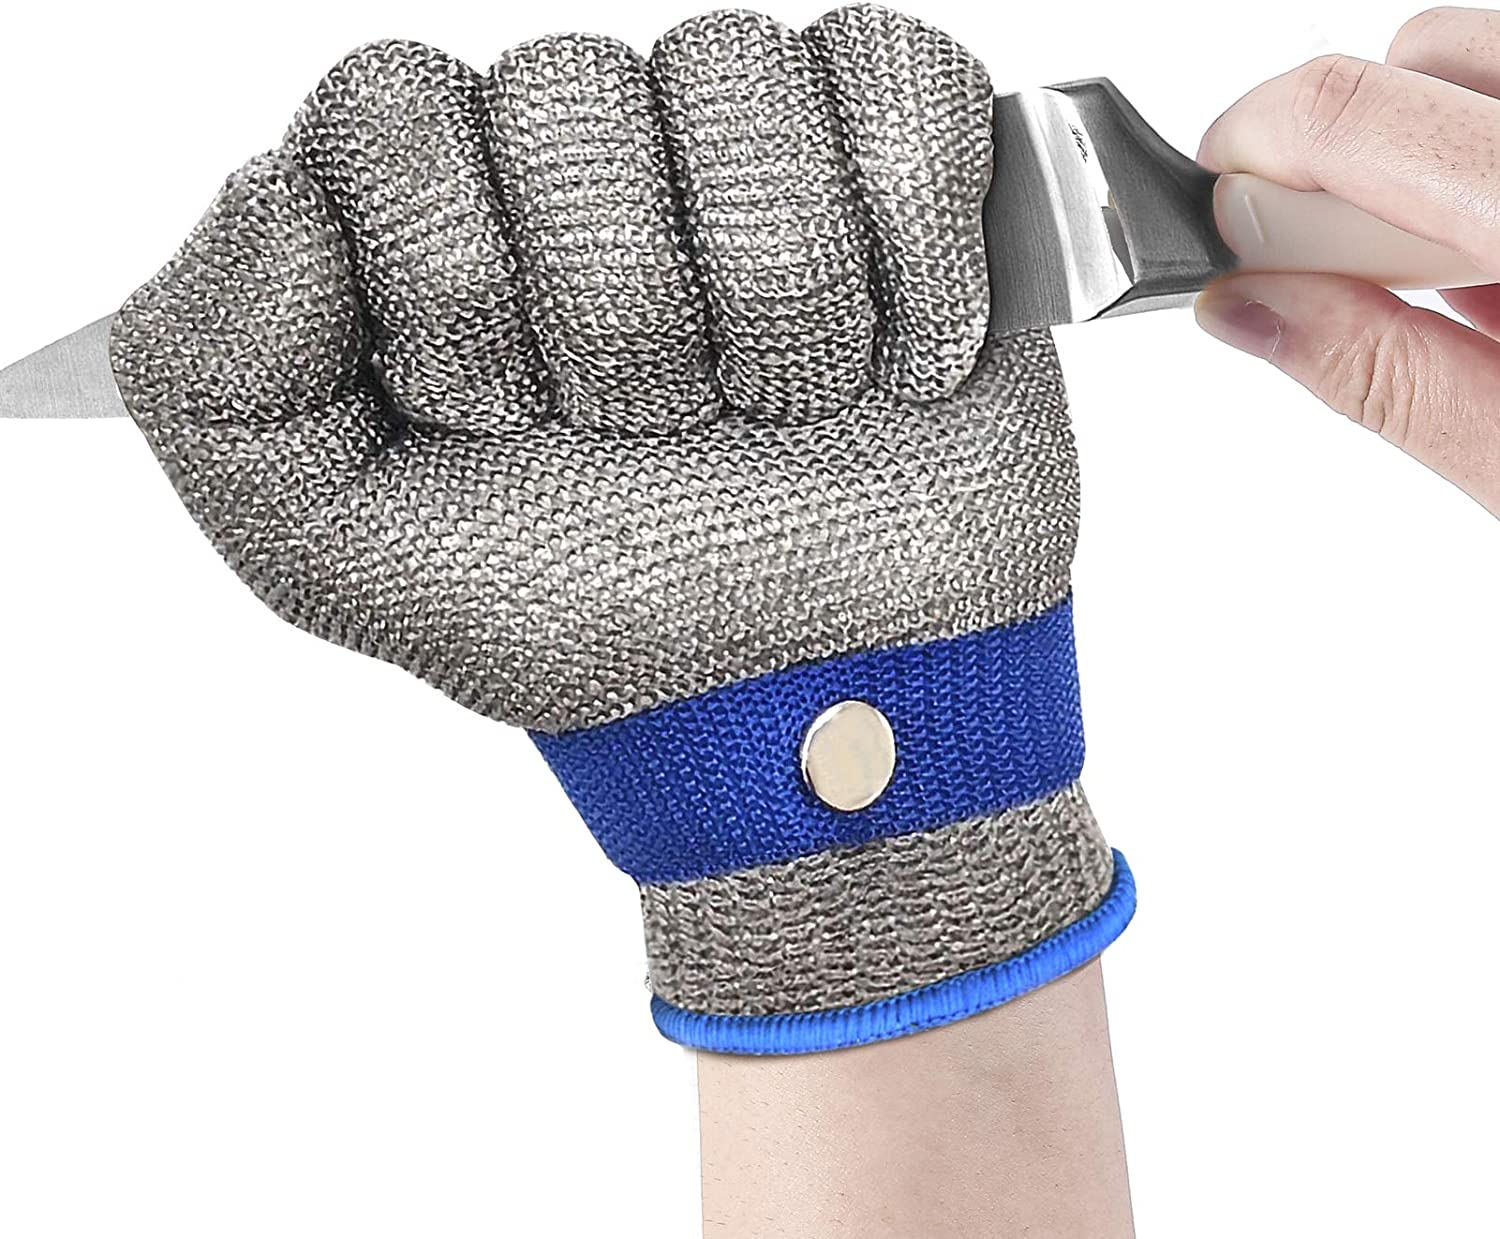 Cut Resistant Gloves, Stainless Steel Wire Metal Mesh Butcher Safety Level 9 Protection, Safety Work Glove